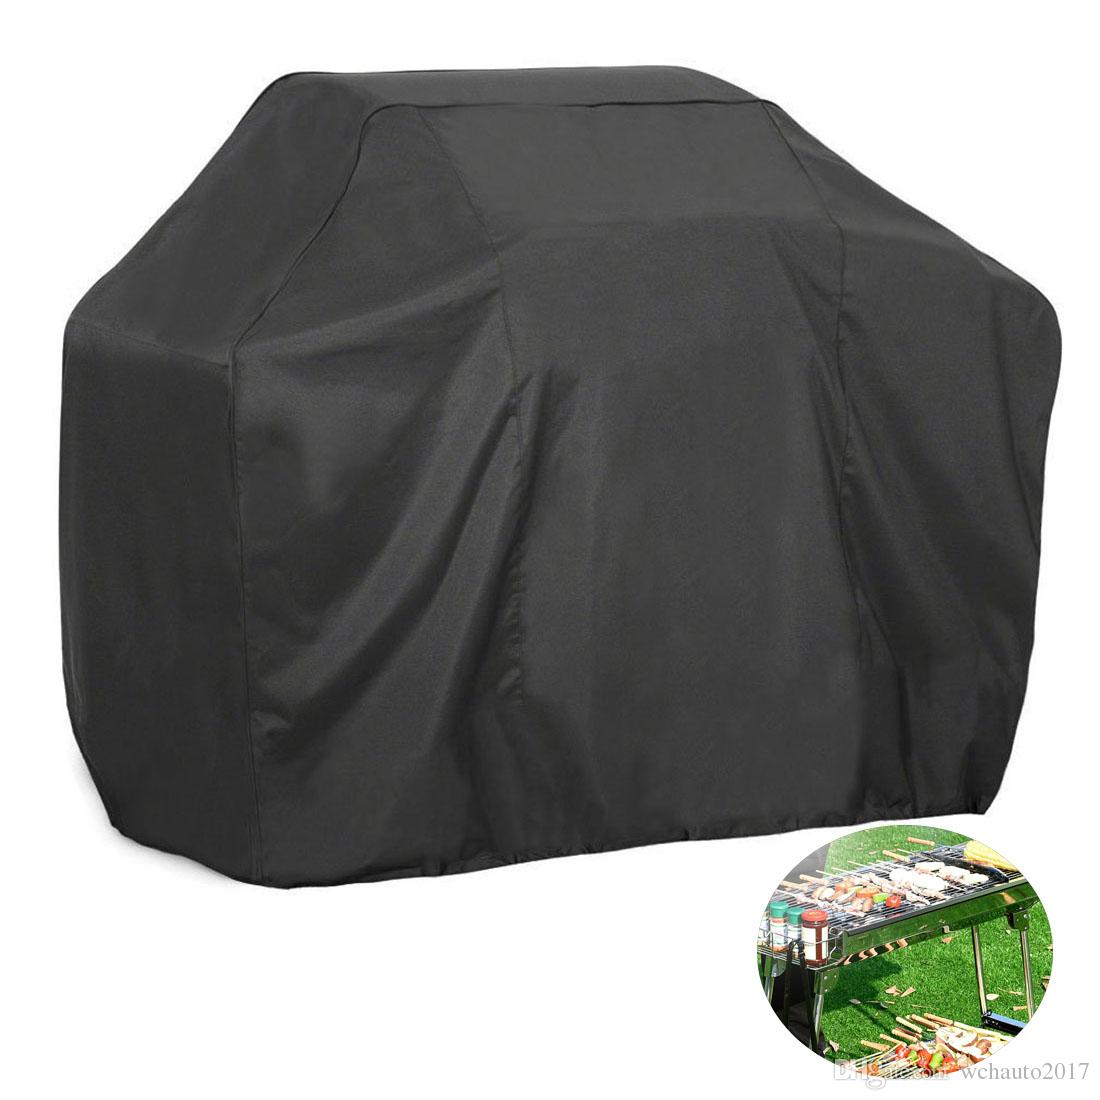 BBQ Grill Cover,Black Waterproof Dust-proof Grill Cover Fading Resistant BBQ Grill Covers for Holland Weber, Brinkmann, Jenn Air